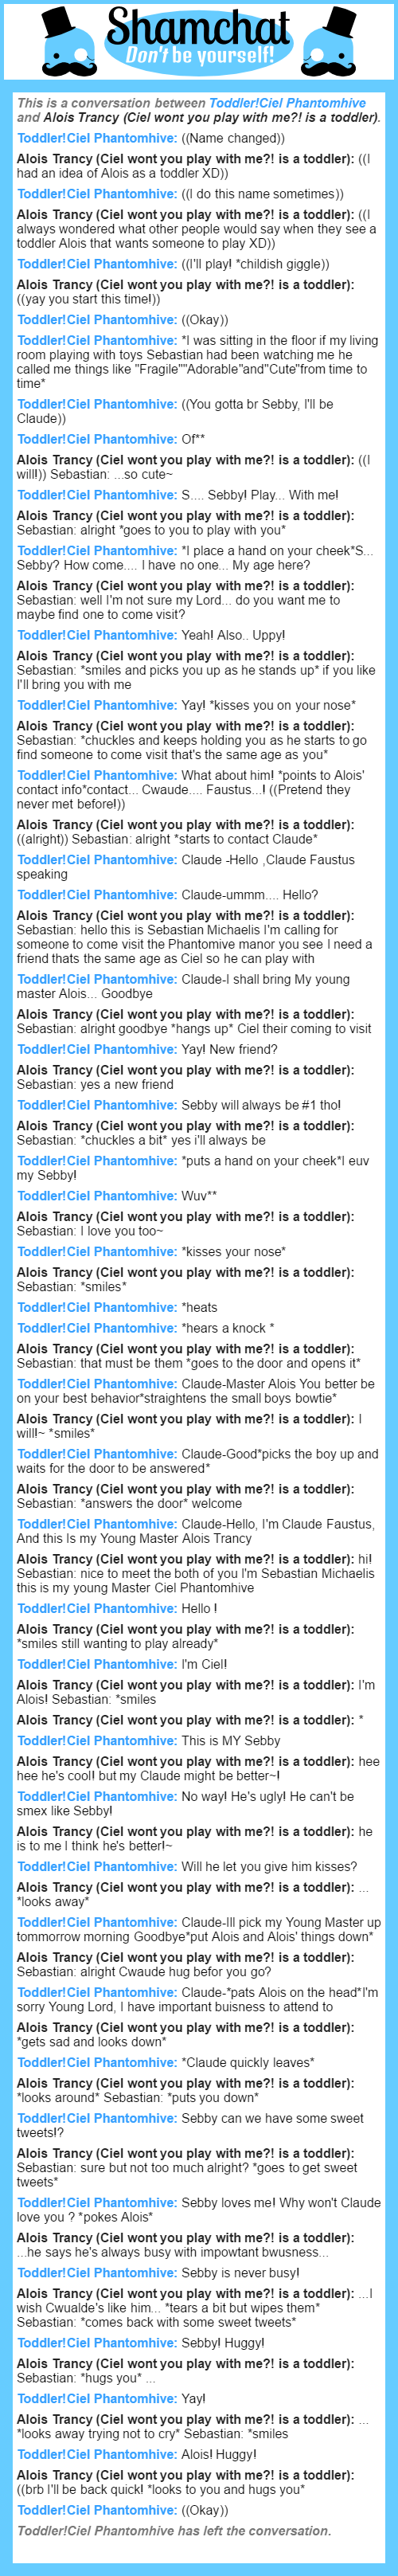 A conversation between Alois Trancy (Ciel wont you play with me?! is a toddler) and Toddler!Ciel Phantomhive